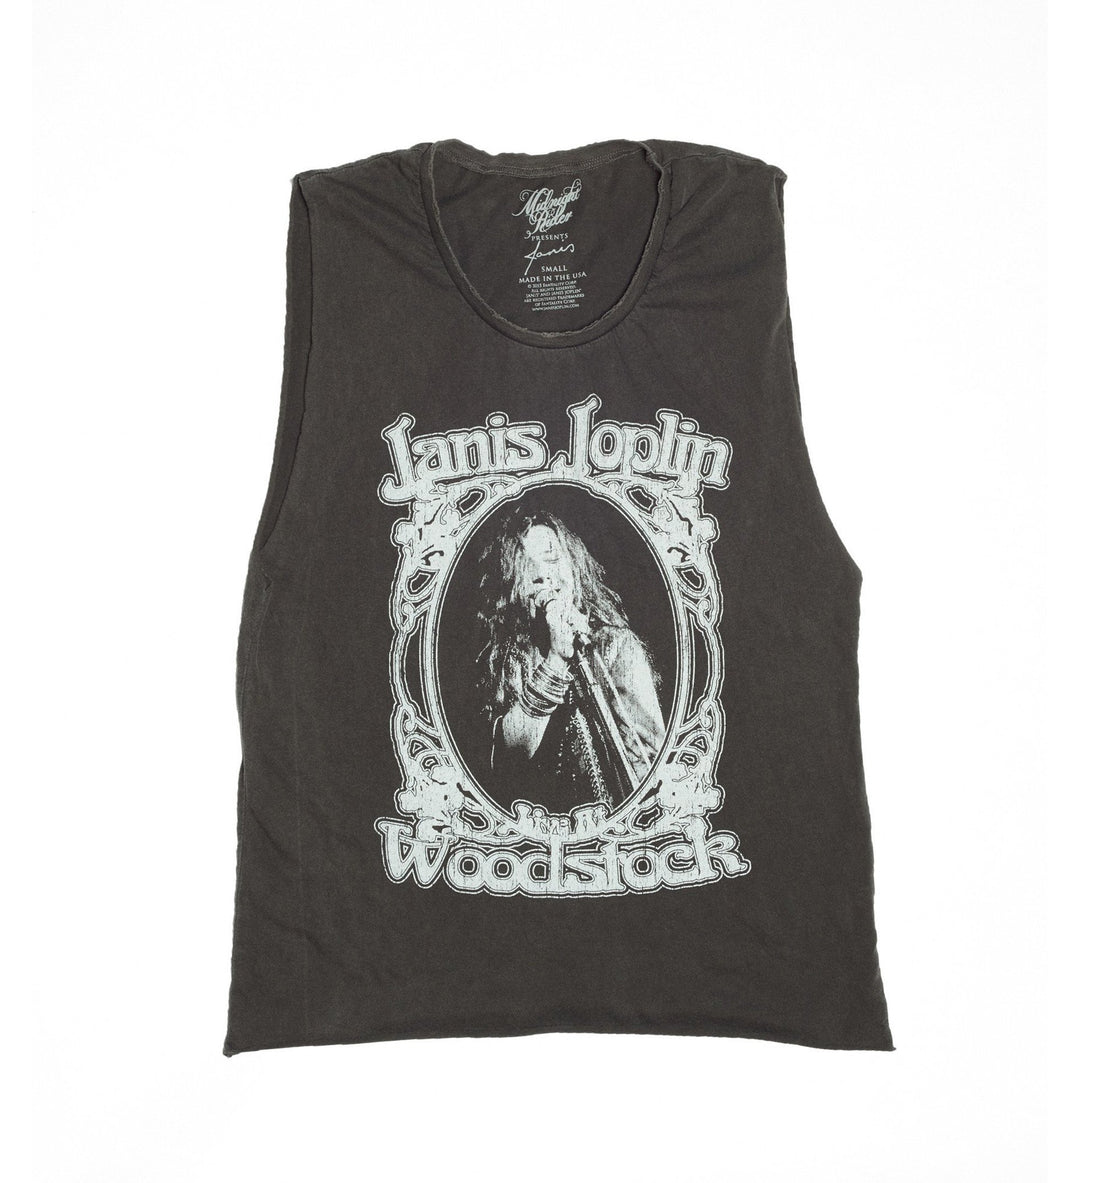 Midnight Rider - Janis Joplin Live at Woodstock Muscle Tee - Tops - Iron and Resin